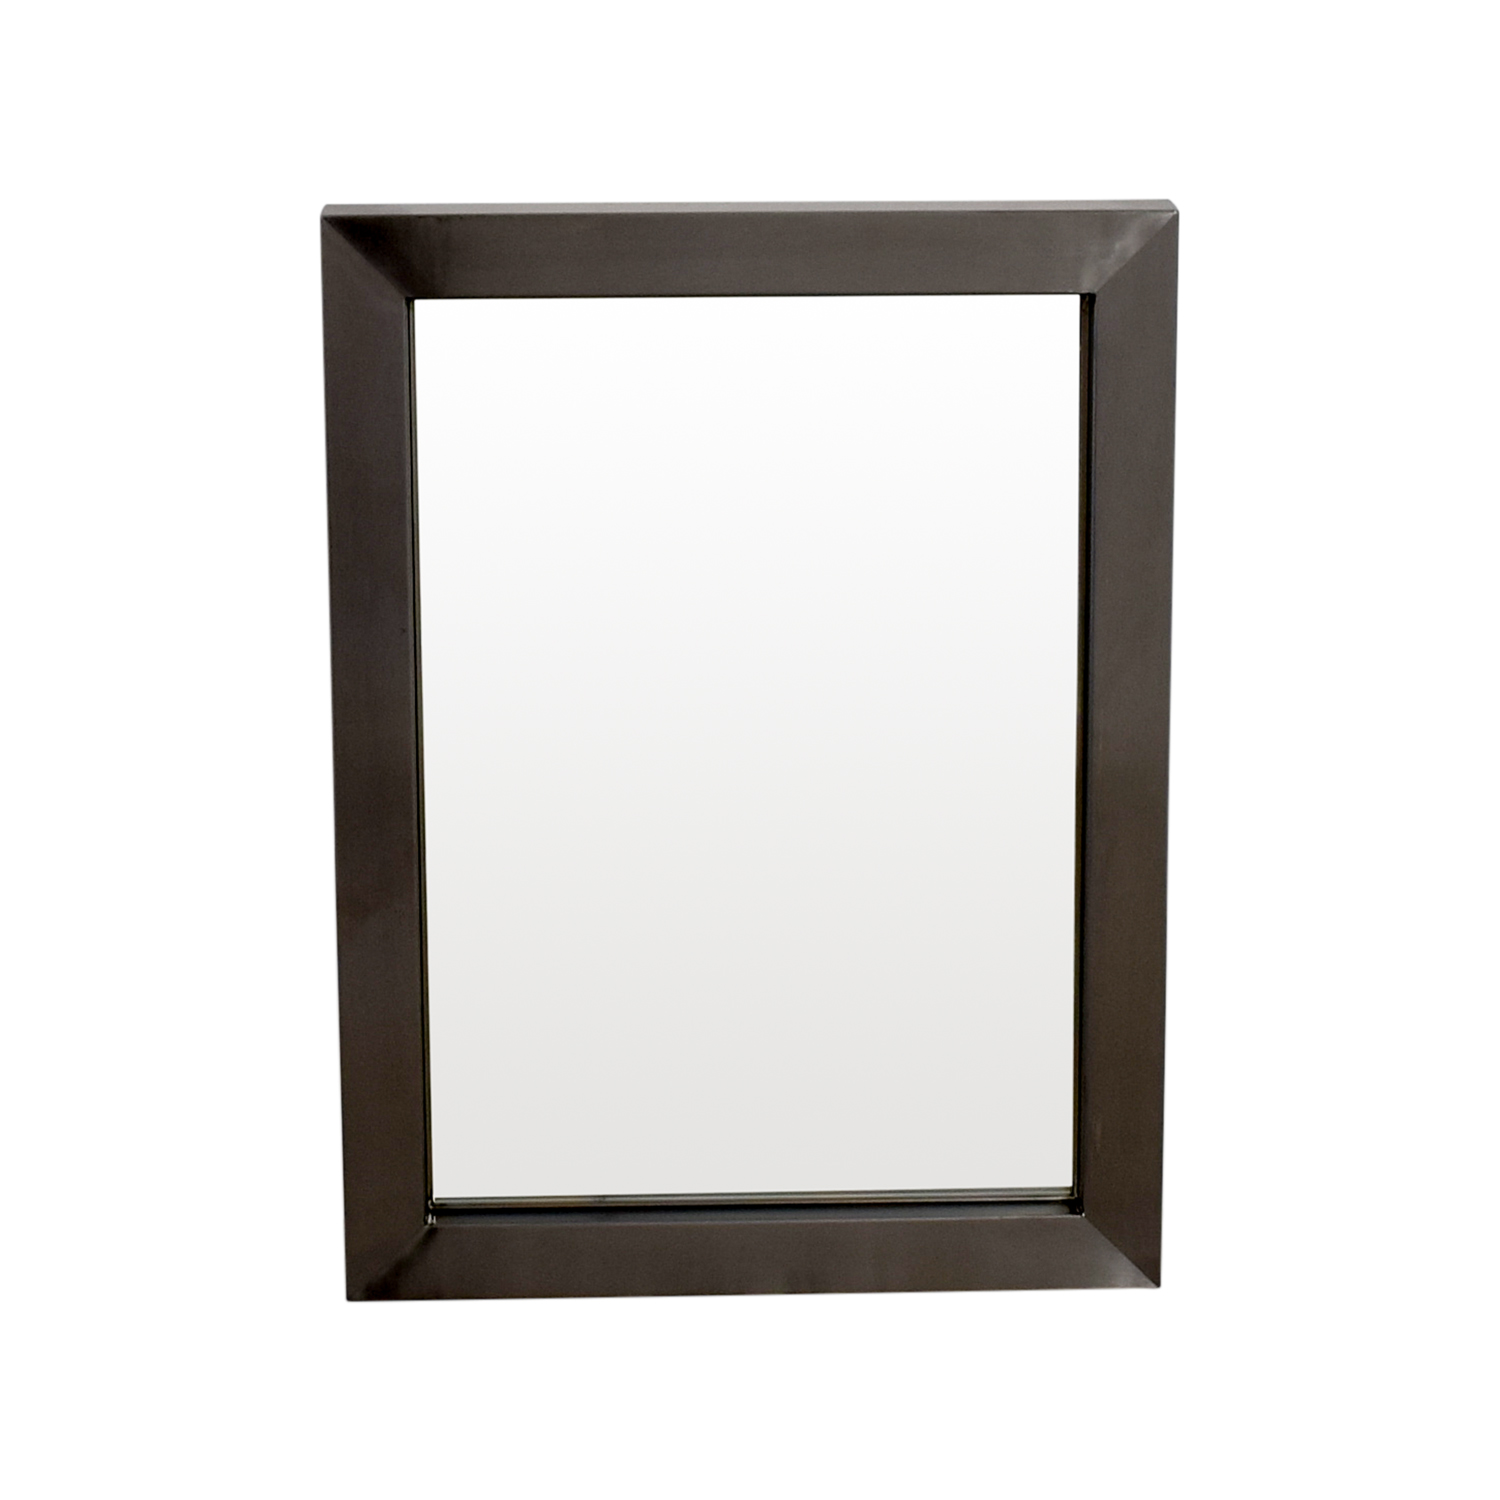 Room & Board Room & Board Industry Mirror Mirrors